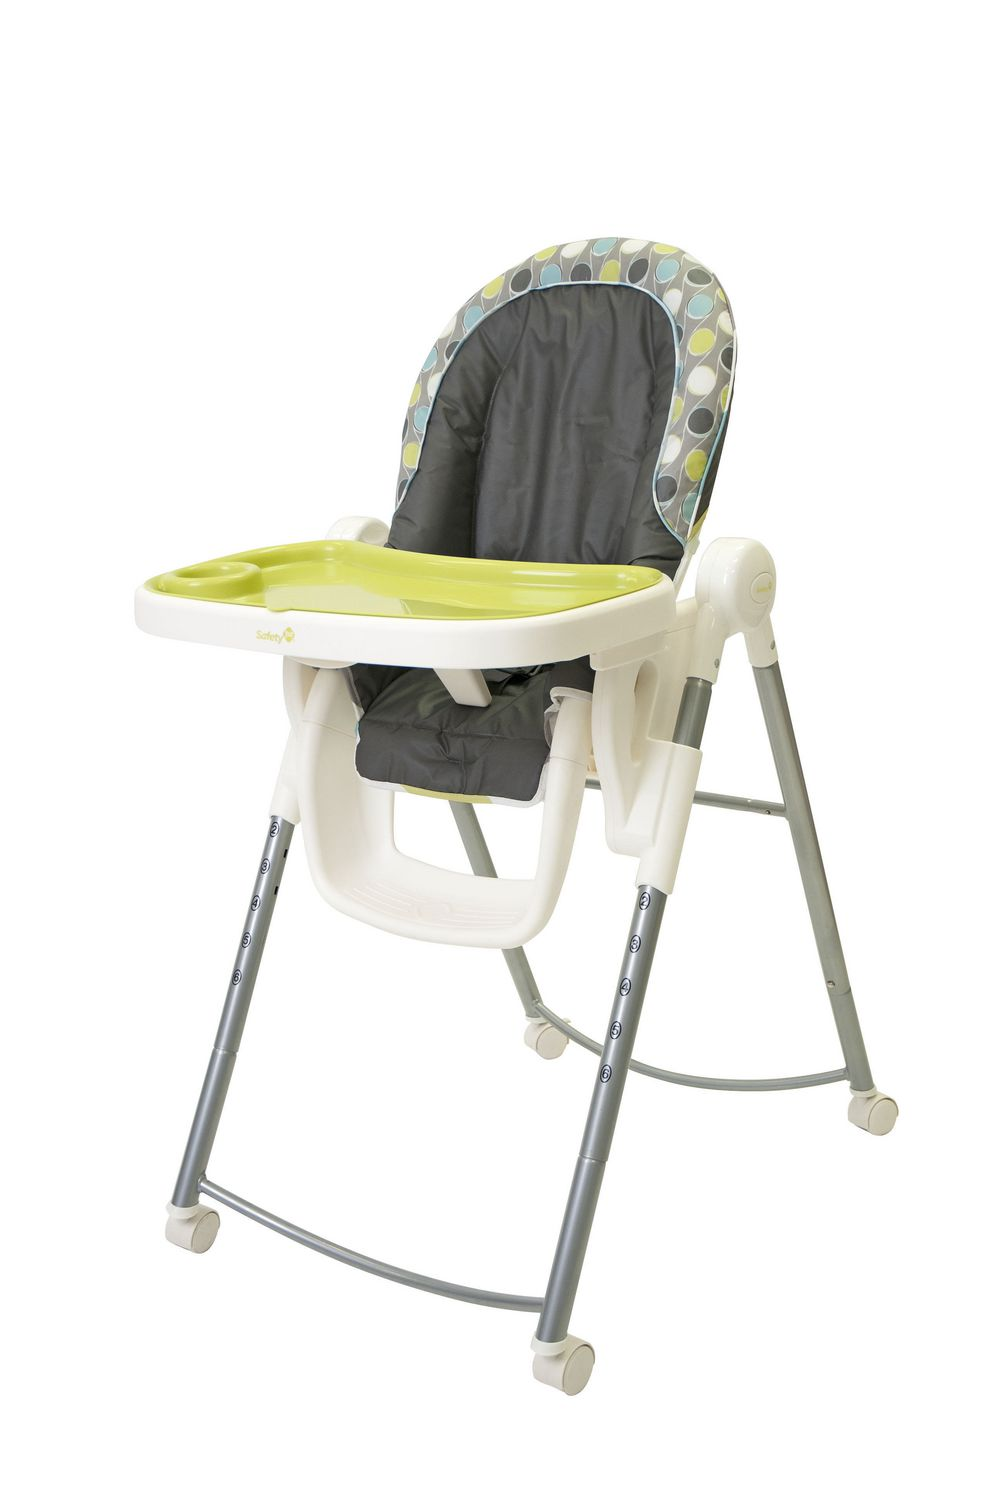 High Chairs Booster Seats Save Money Live Better Walmartca – Safety 1st Wooden High Chair